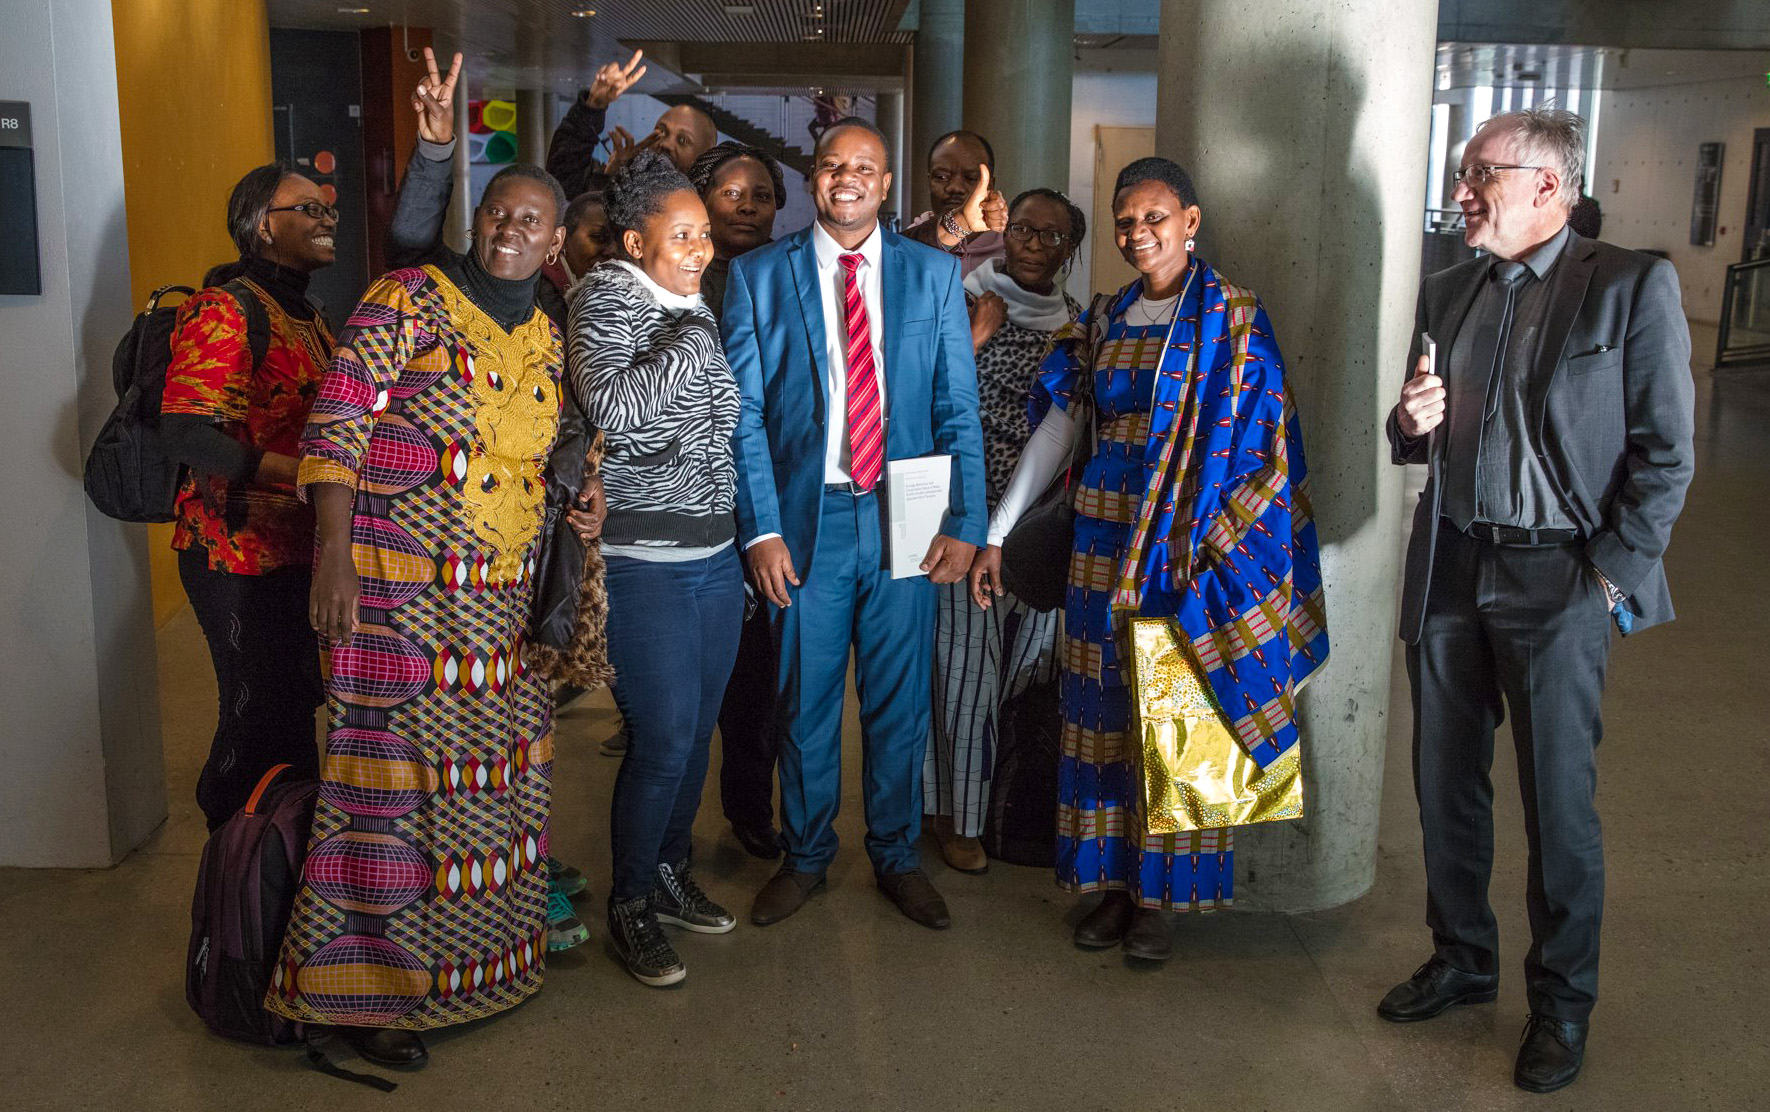 Wilfred Njama Marealle defended his PhD dissertation successfully at NTNU